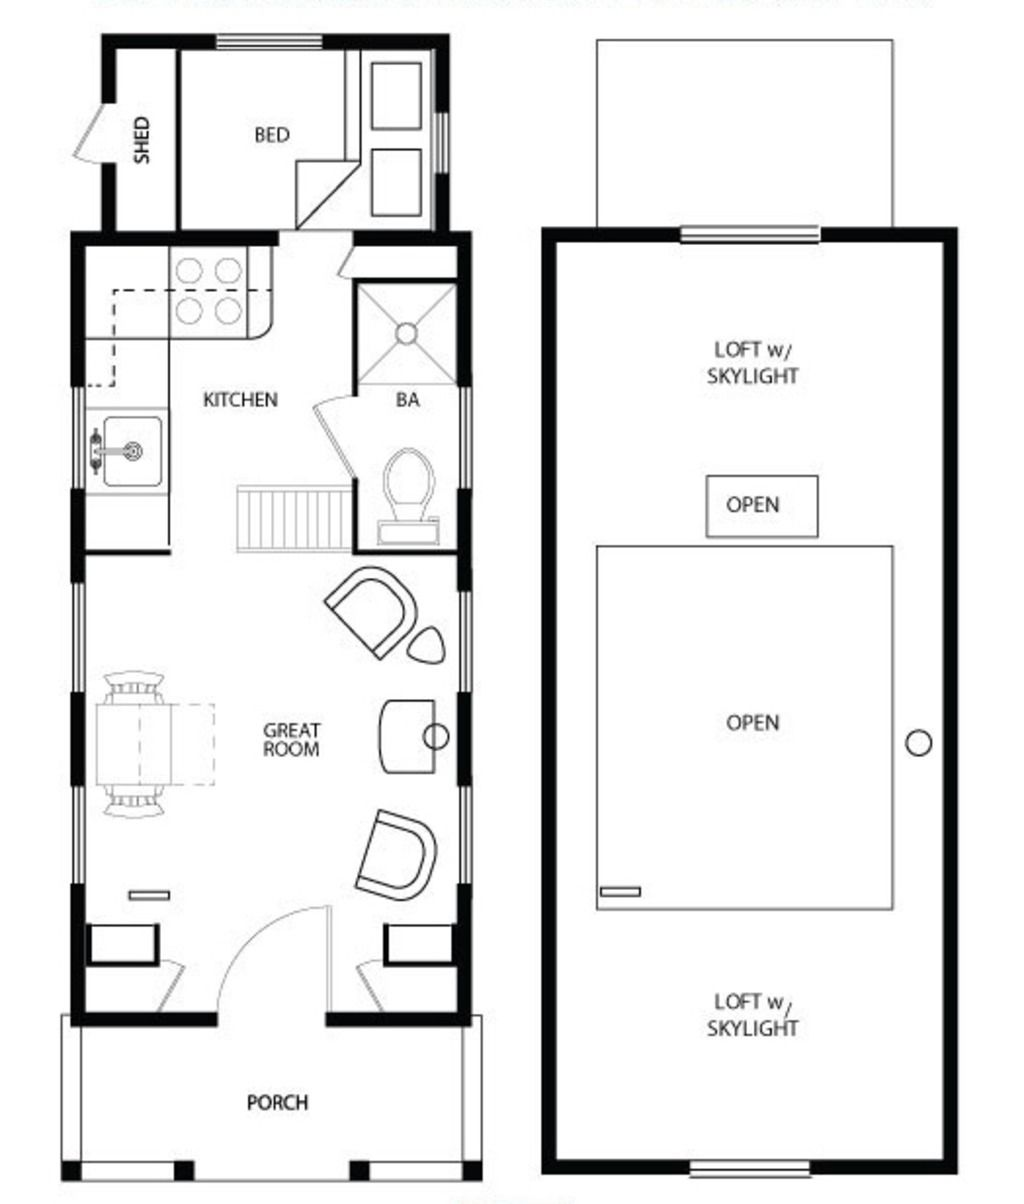 floors tiny house floor plans ideas create concept tiny house floor plans tiny house floor plans small house floor plans small house floor plans with - Micro House Plans